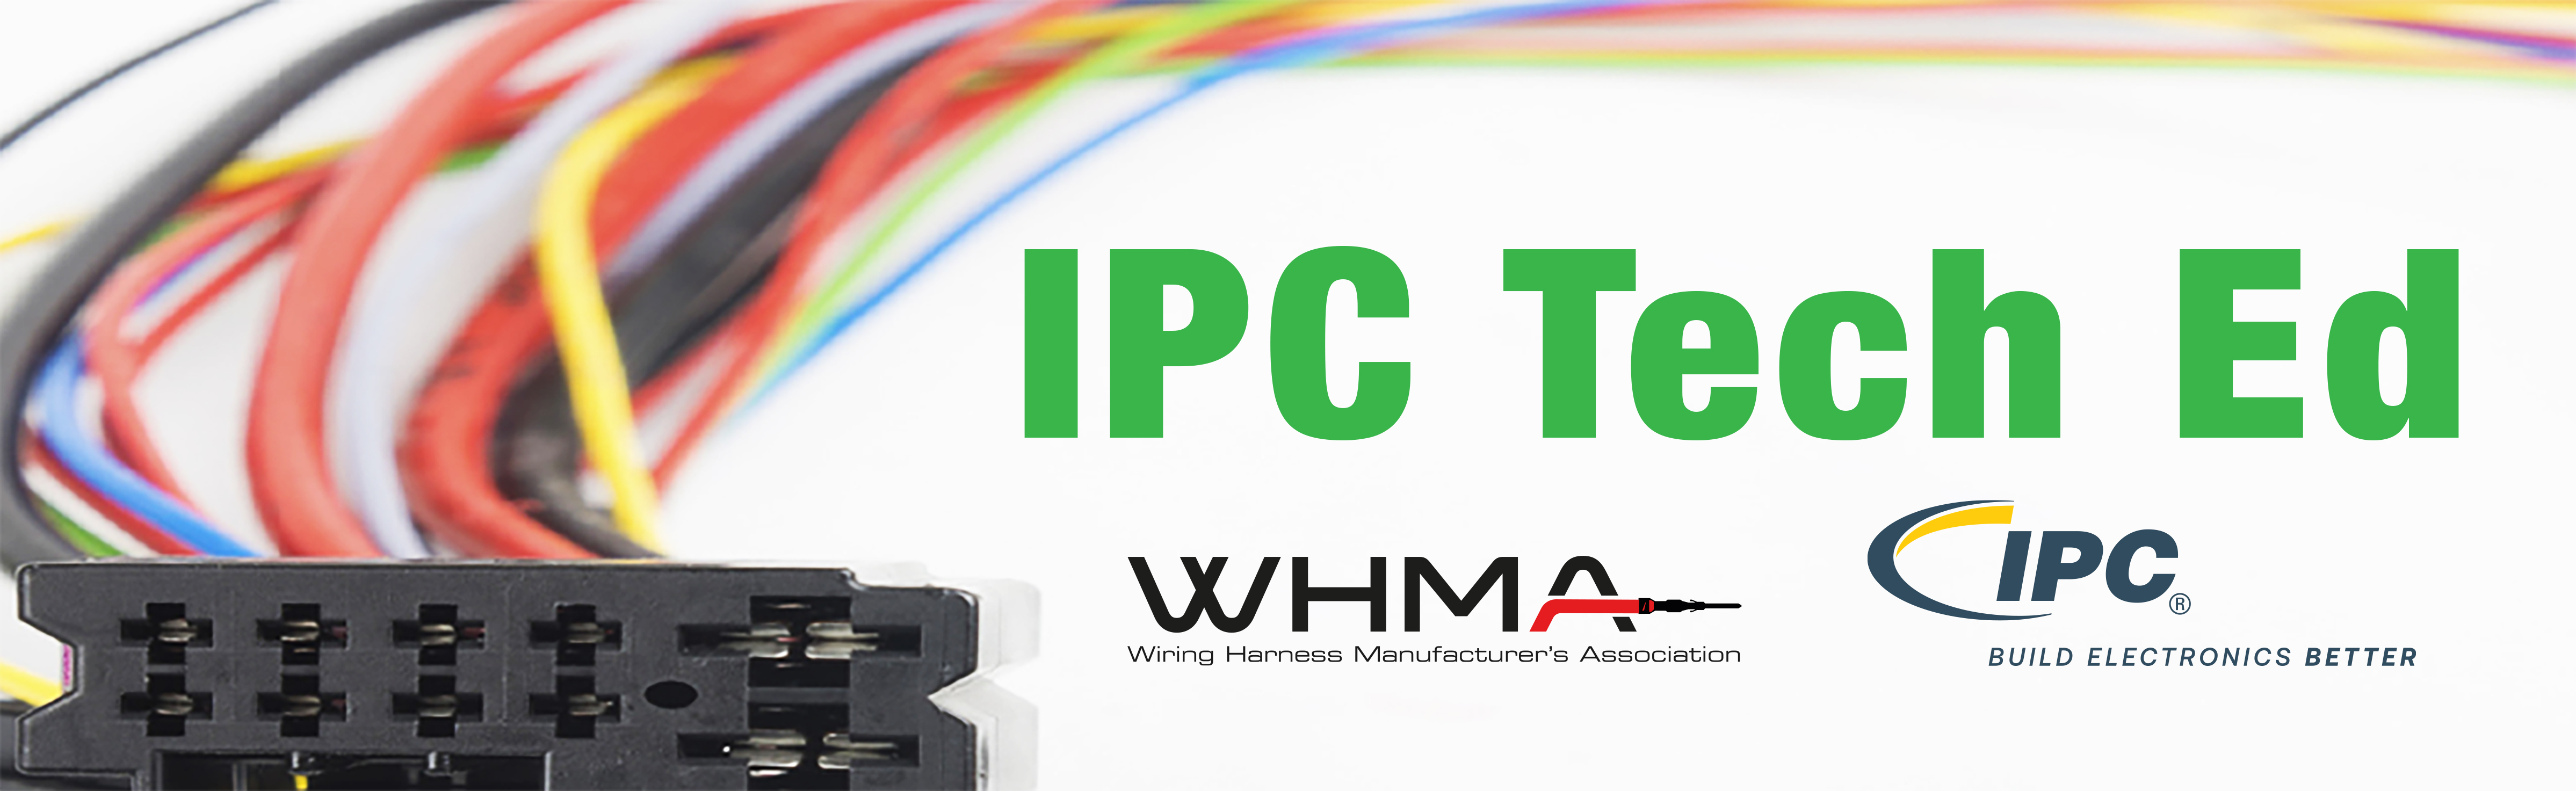 IPC-WHMA-A-620 Emerging Needs for Criteria-Repair/Rework, Design for Manufacturing (DfM) Issues, High Voltage Electric Mobility